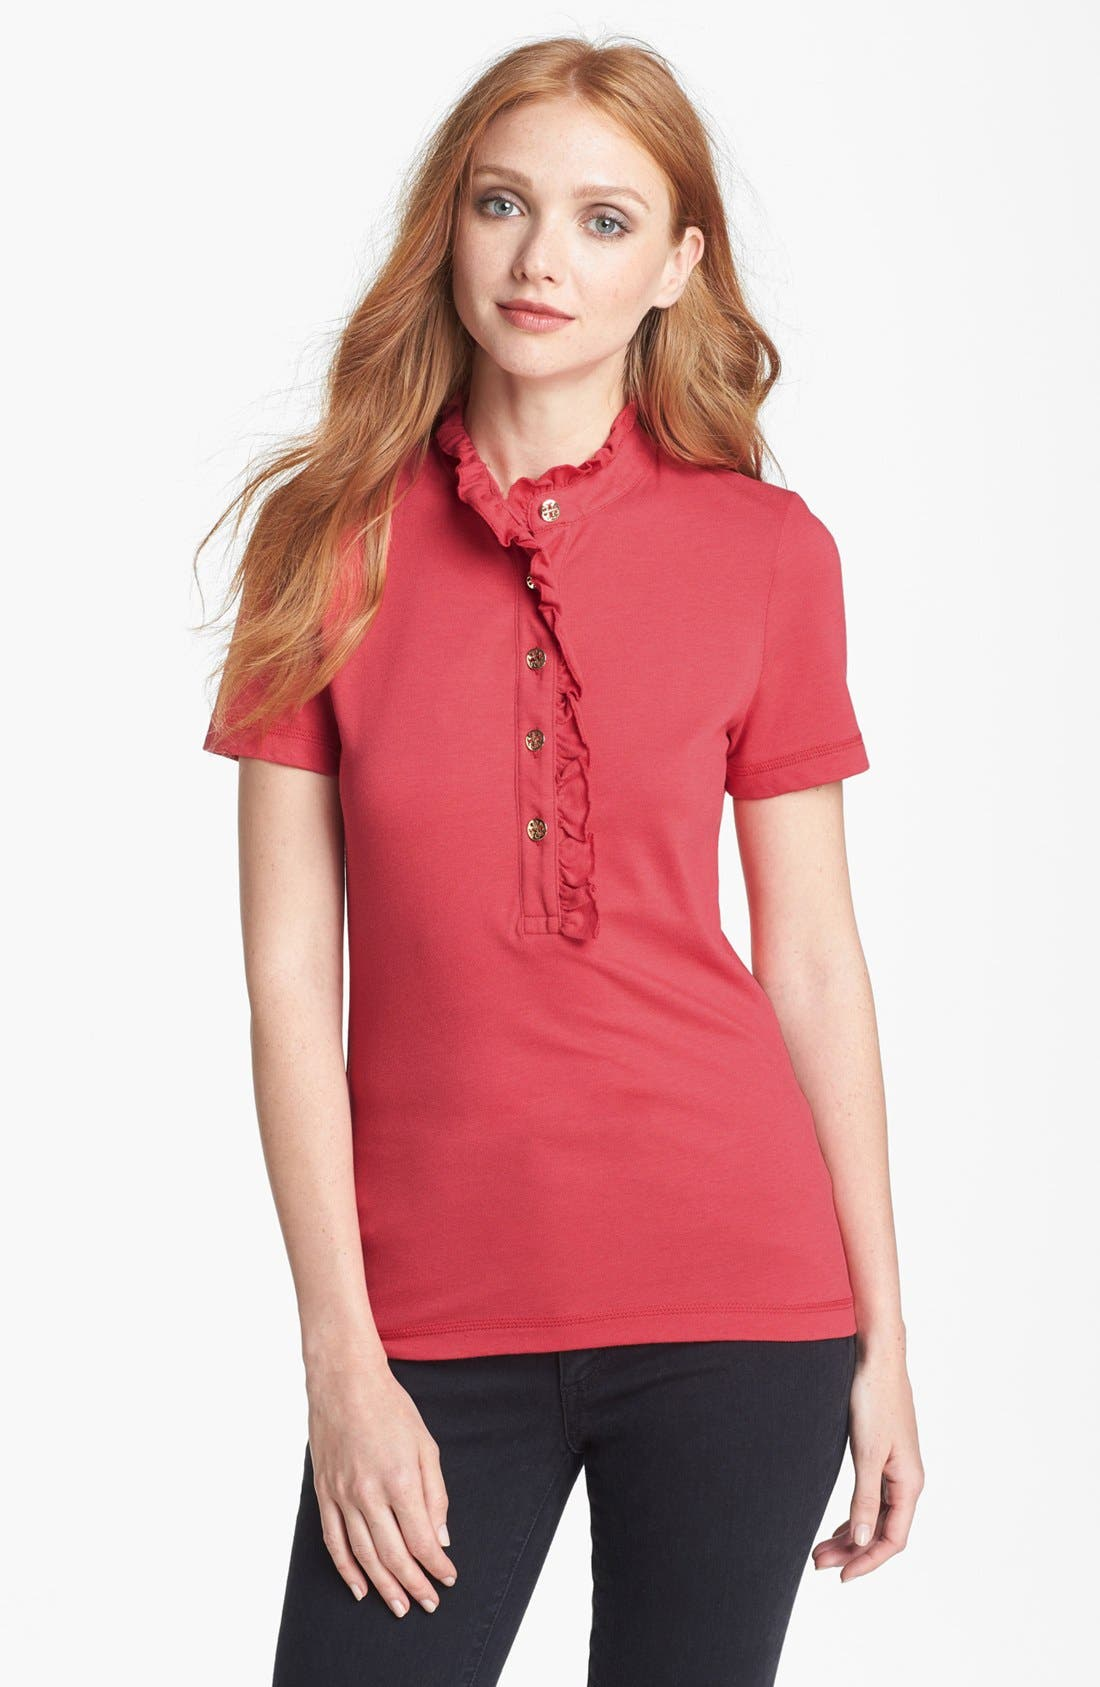 Main Image - Tory Burch 'Lidia' Short Sleeve Polo